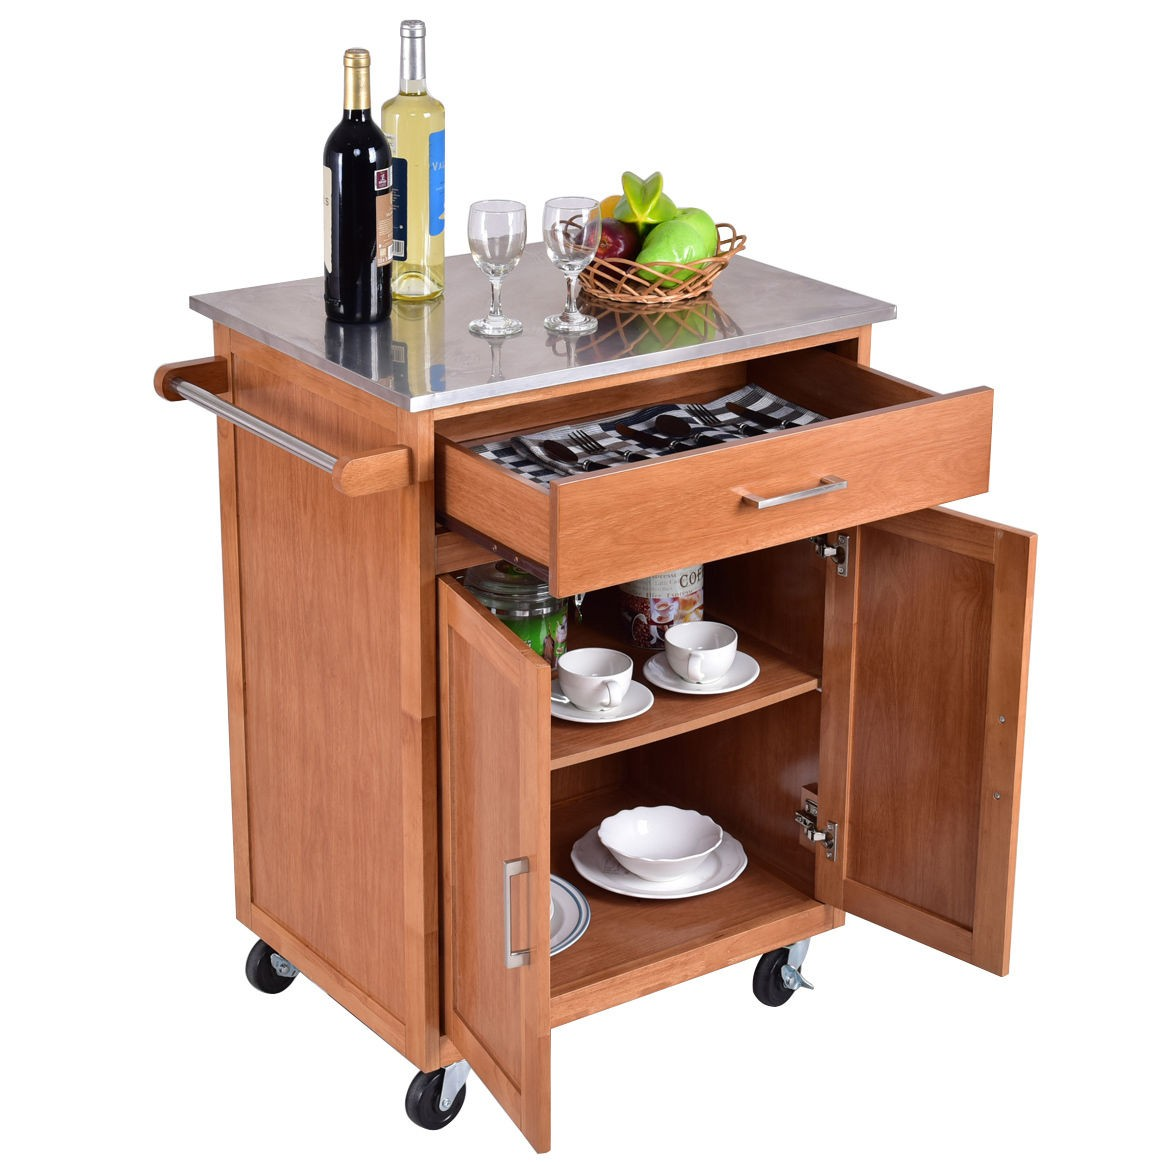 wooden kitchen rolling storage cabinet with stainless